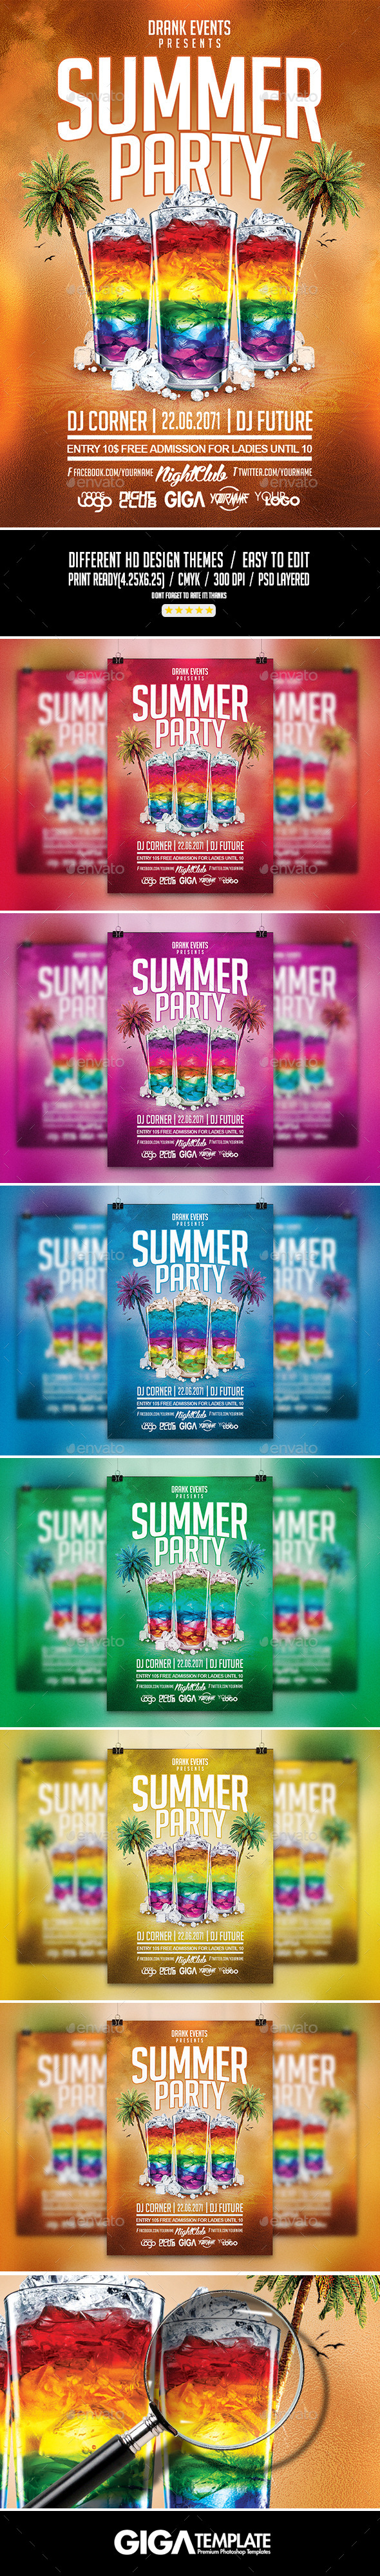 GraphicRiver Summer Party Cocktail Night Flyer PSD Template 11462459